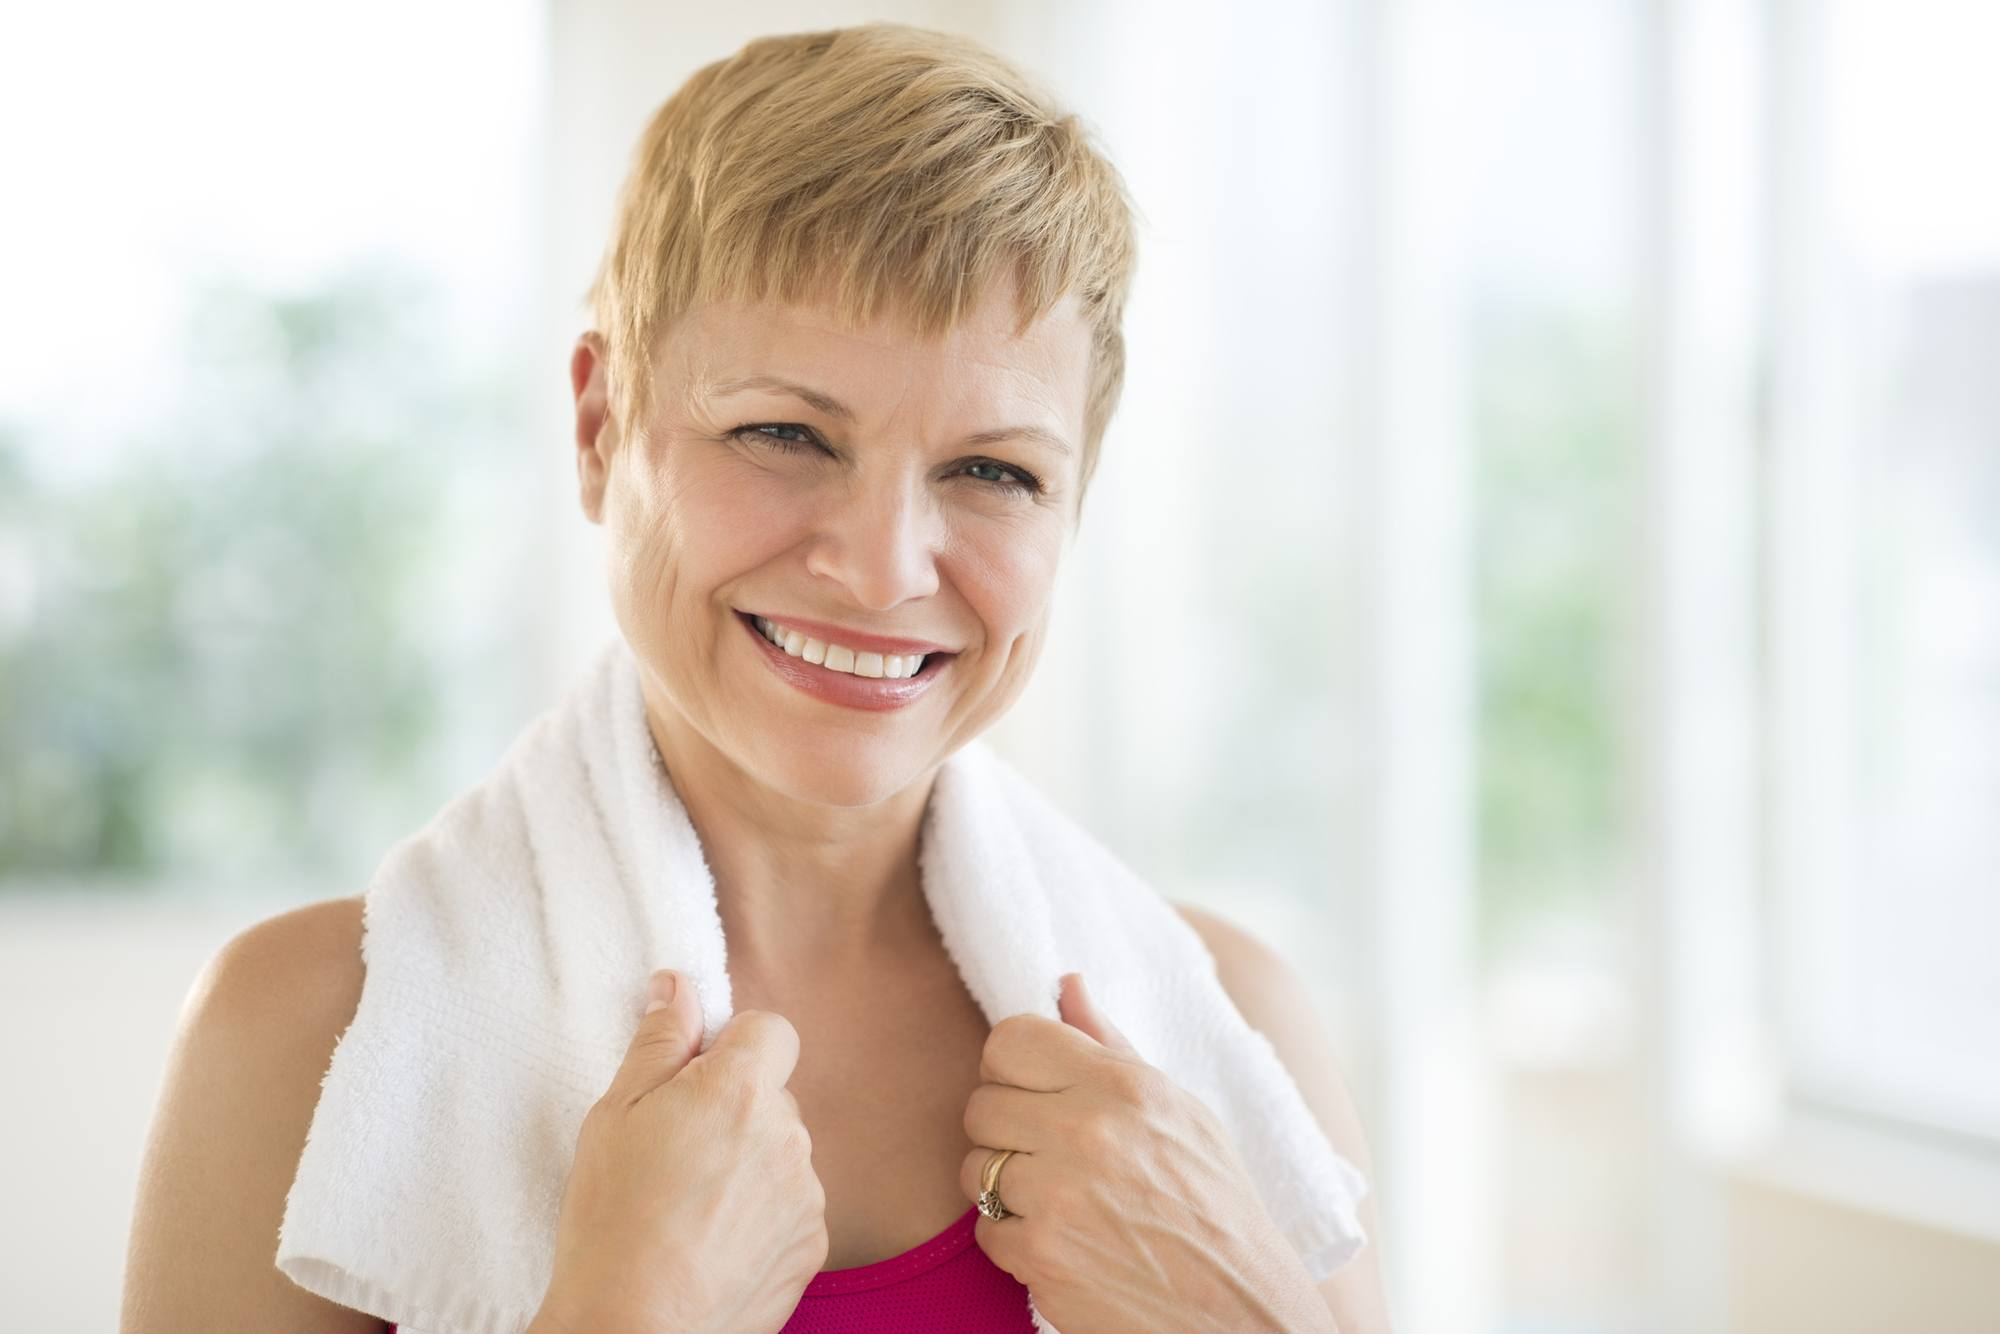 Short Haircuts For Women Over 50 9 Pretty And Practical Looks